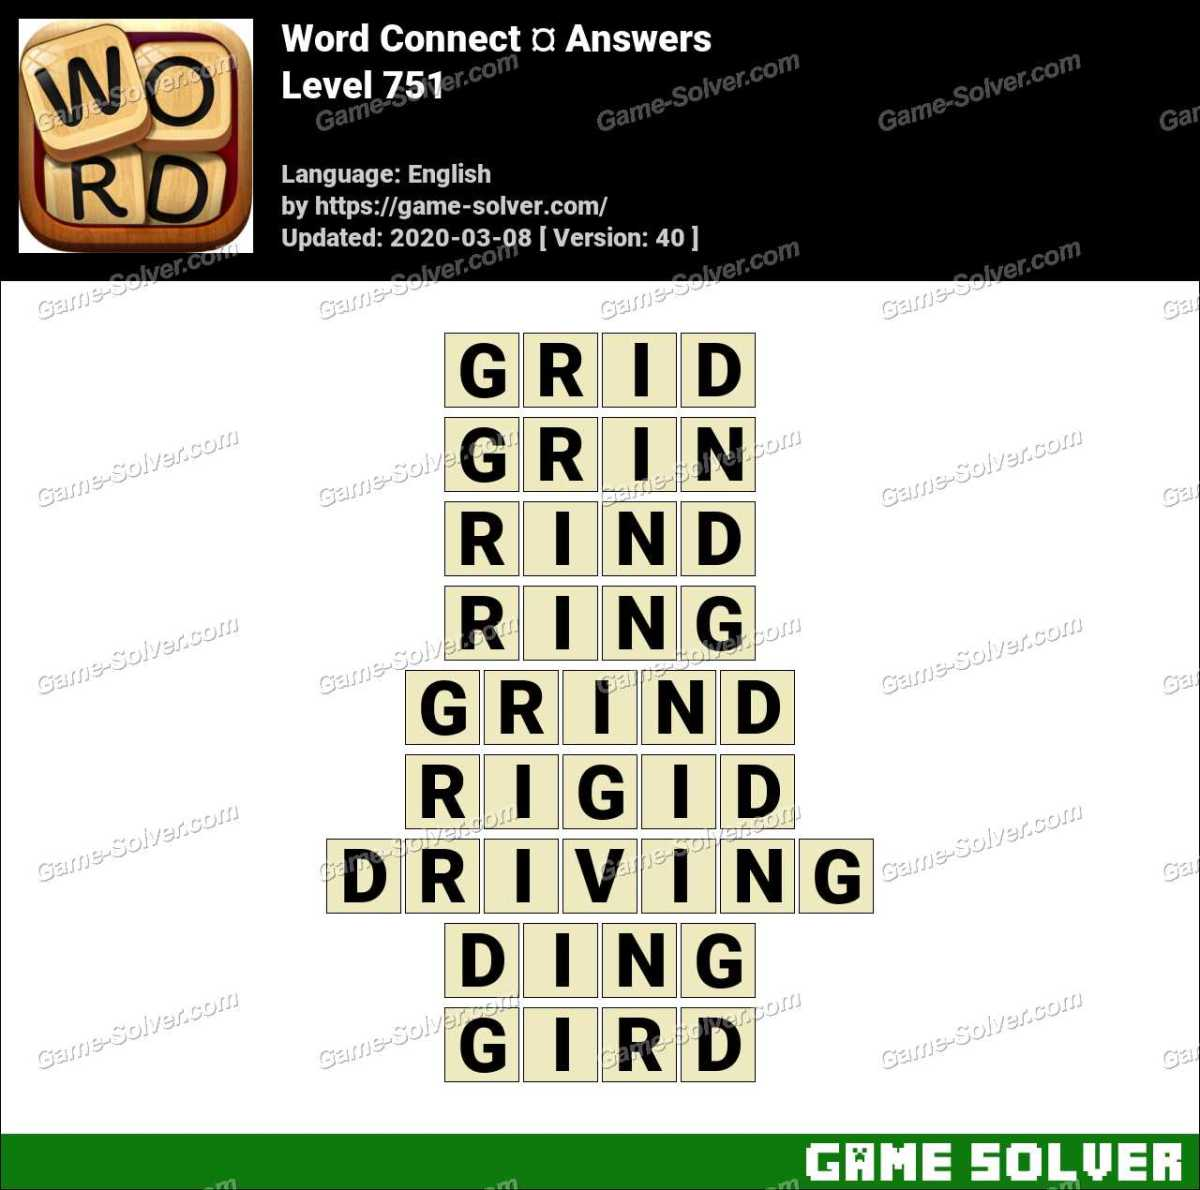 Word Connect Level 751 Answers